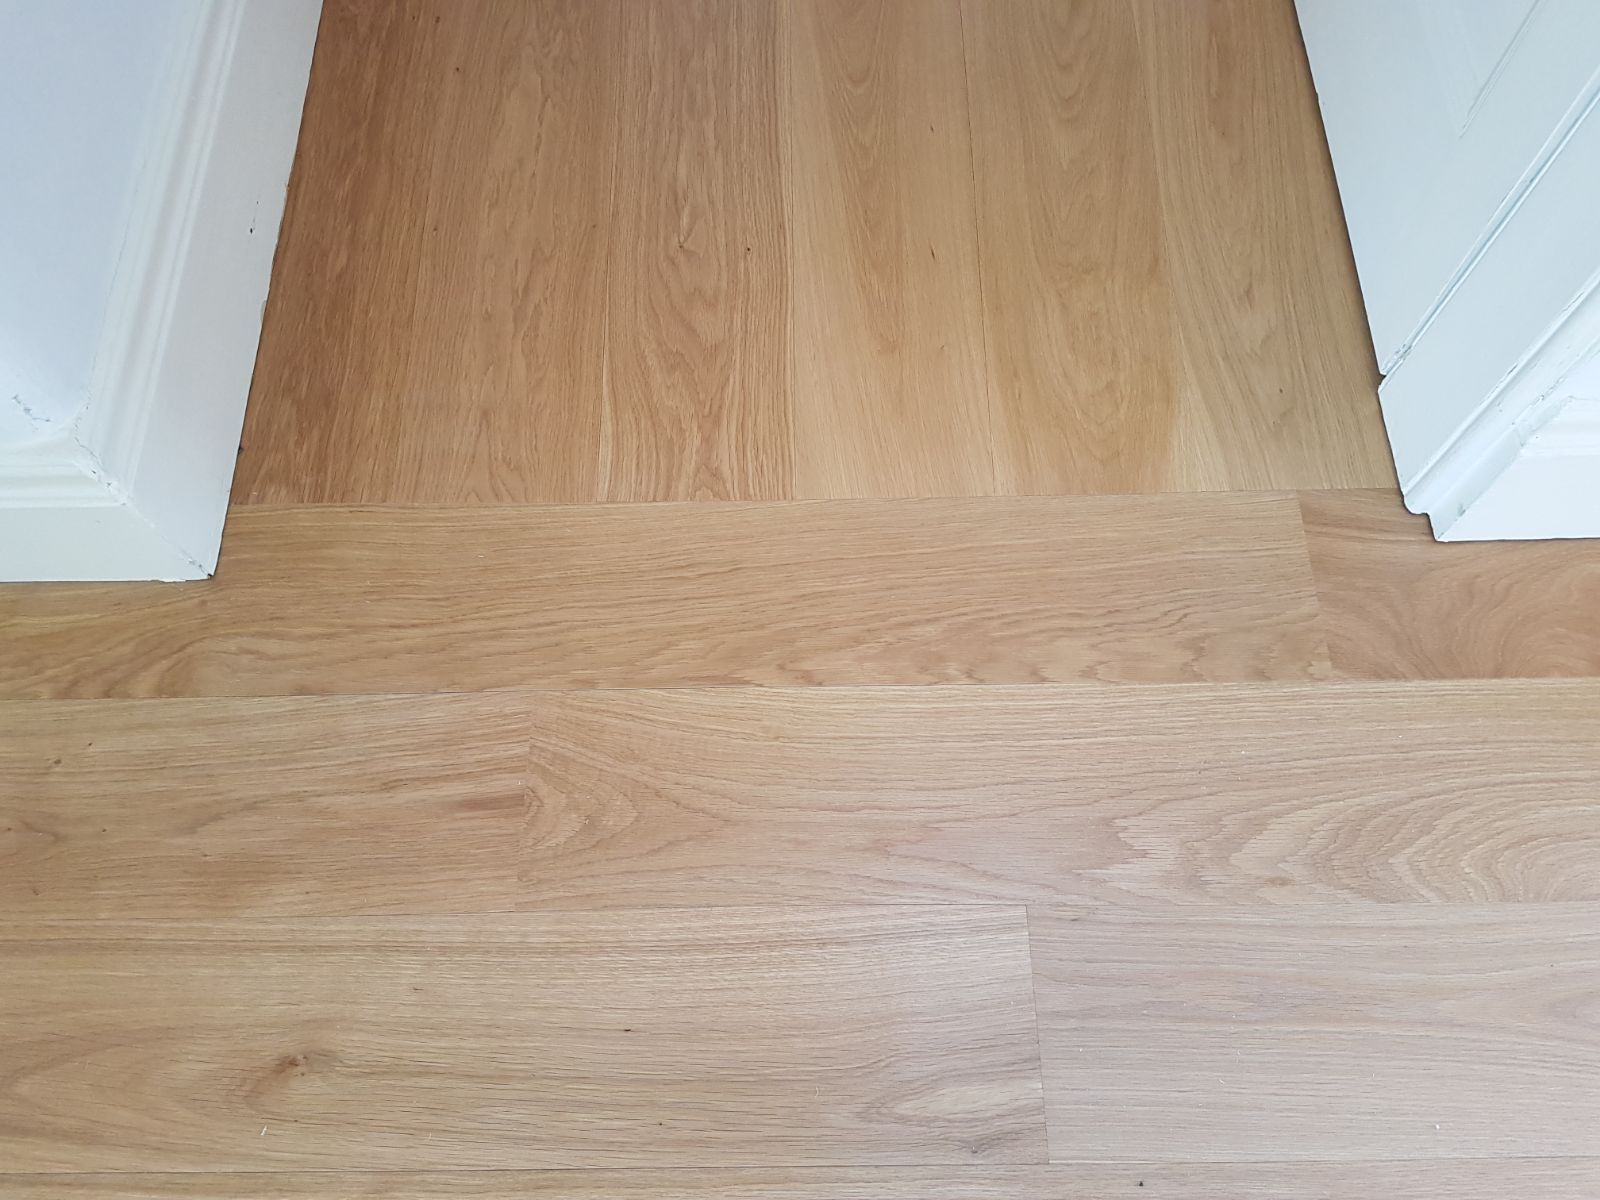 Wood flooring doesn't all have to be laid in the same